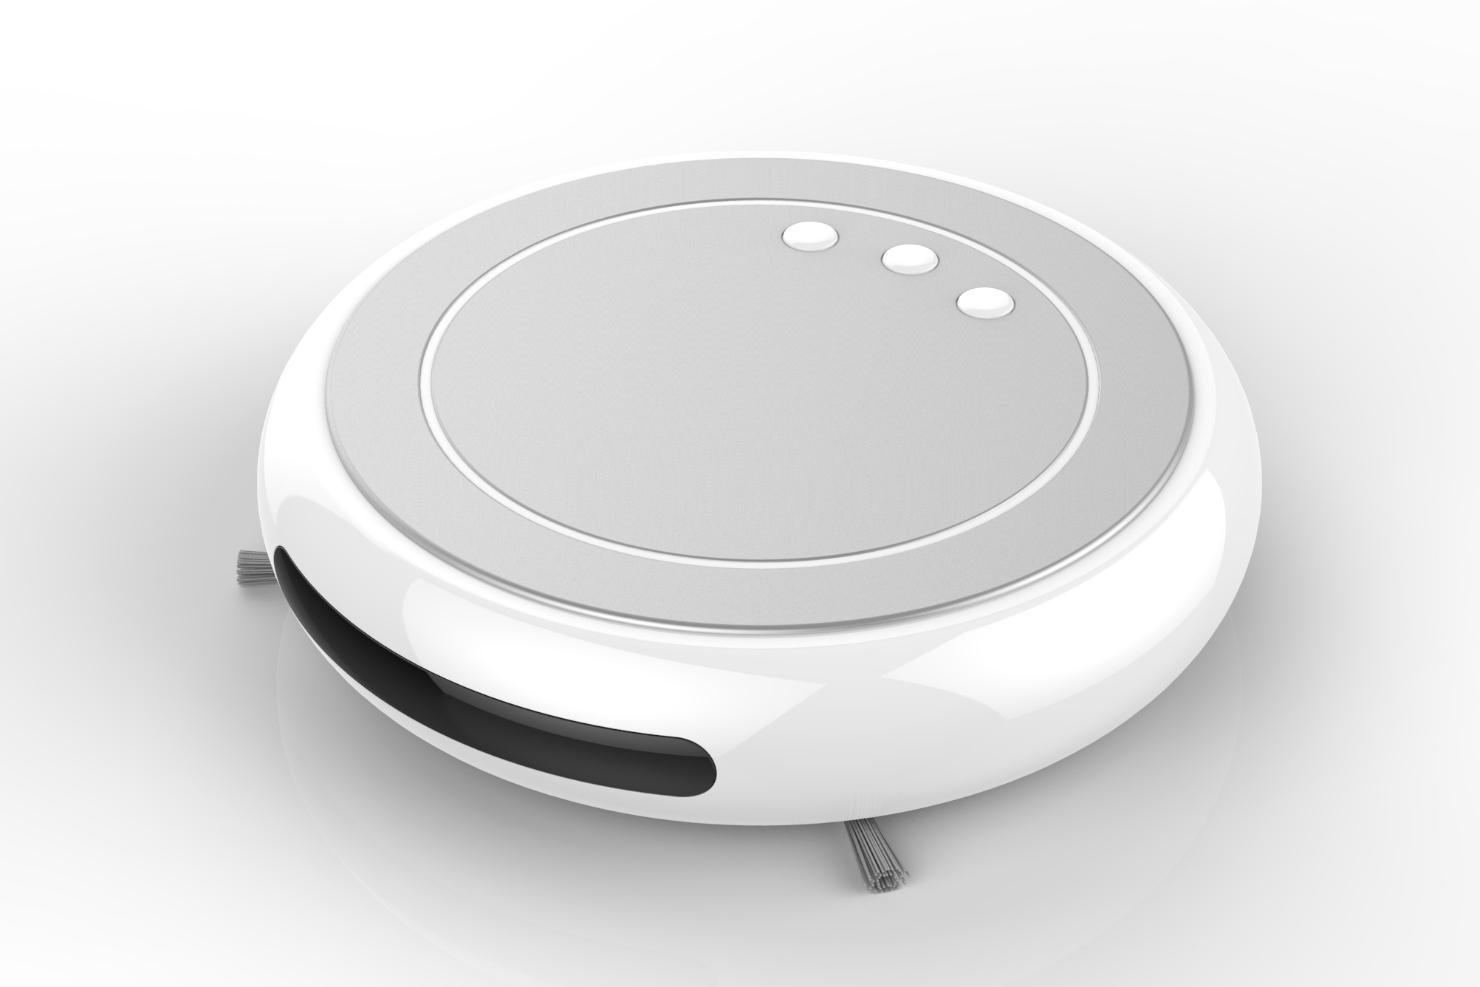 fire department rescues woman after robot vacuum �attack